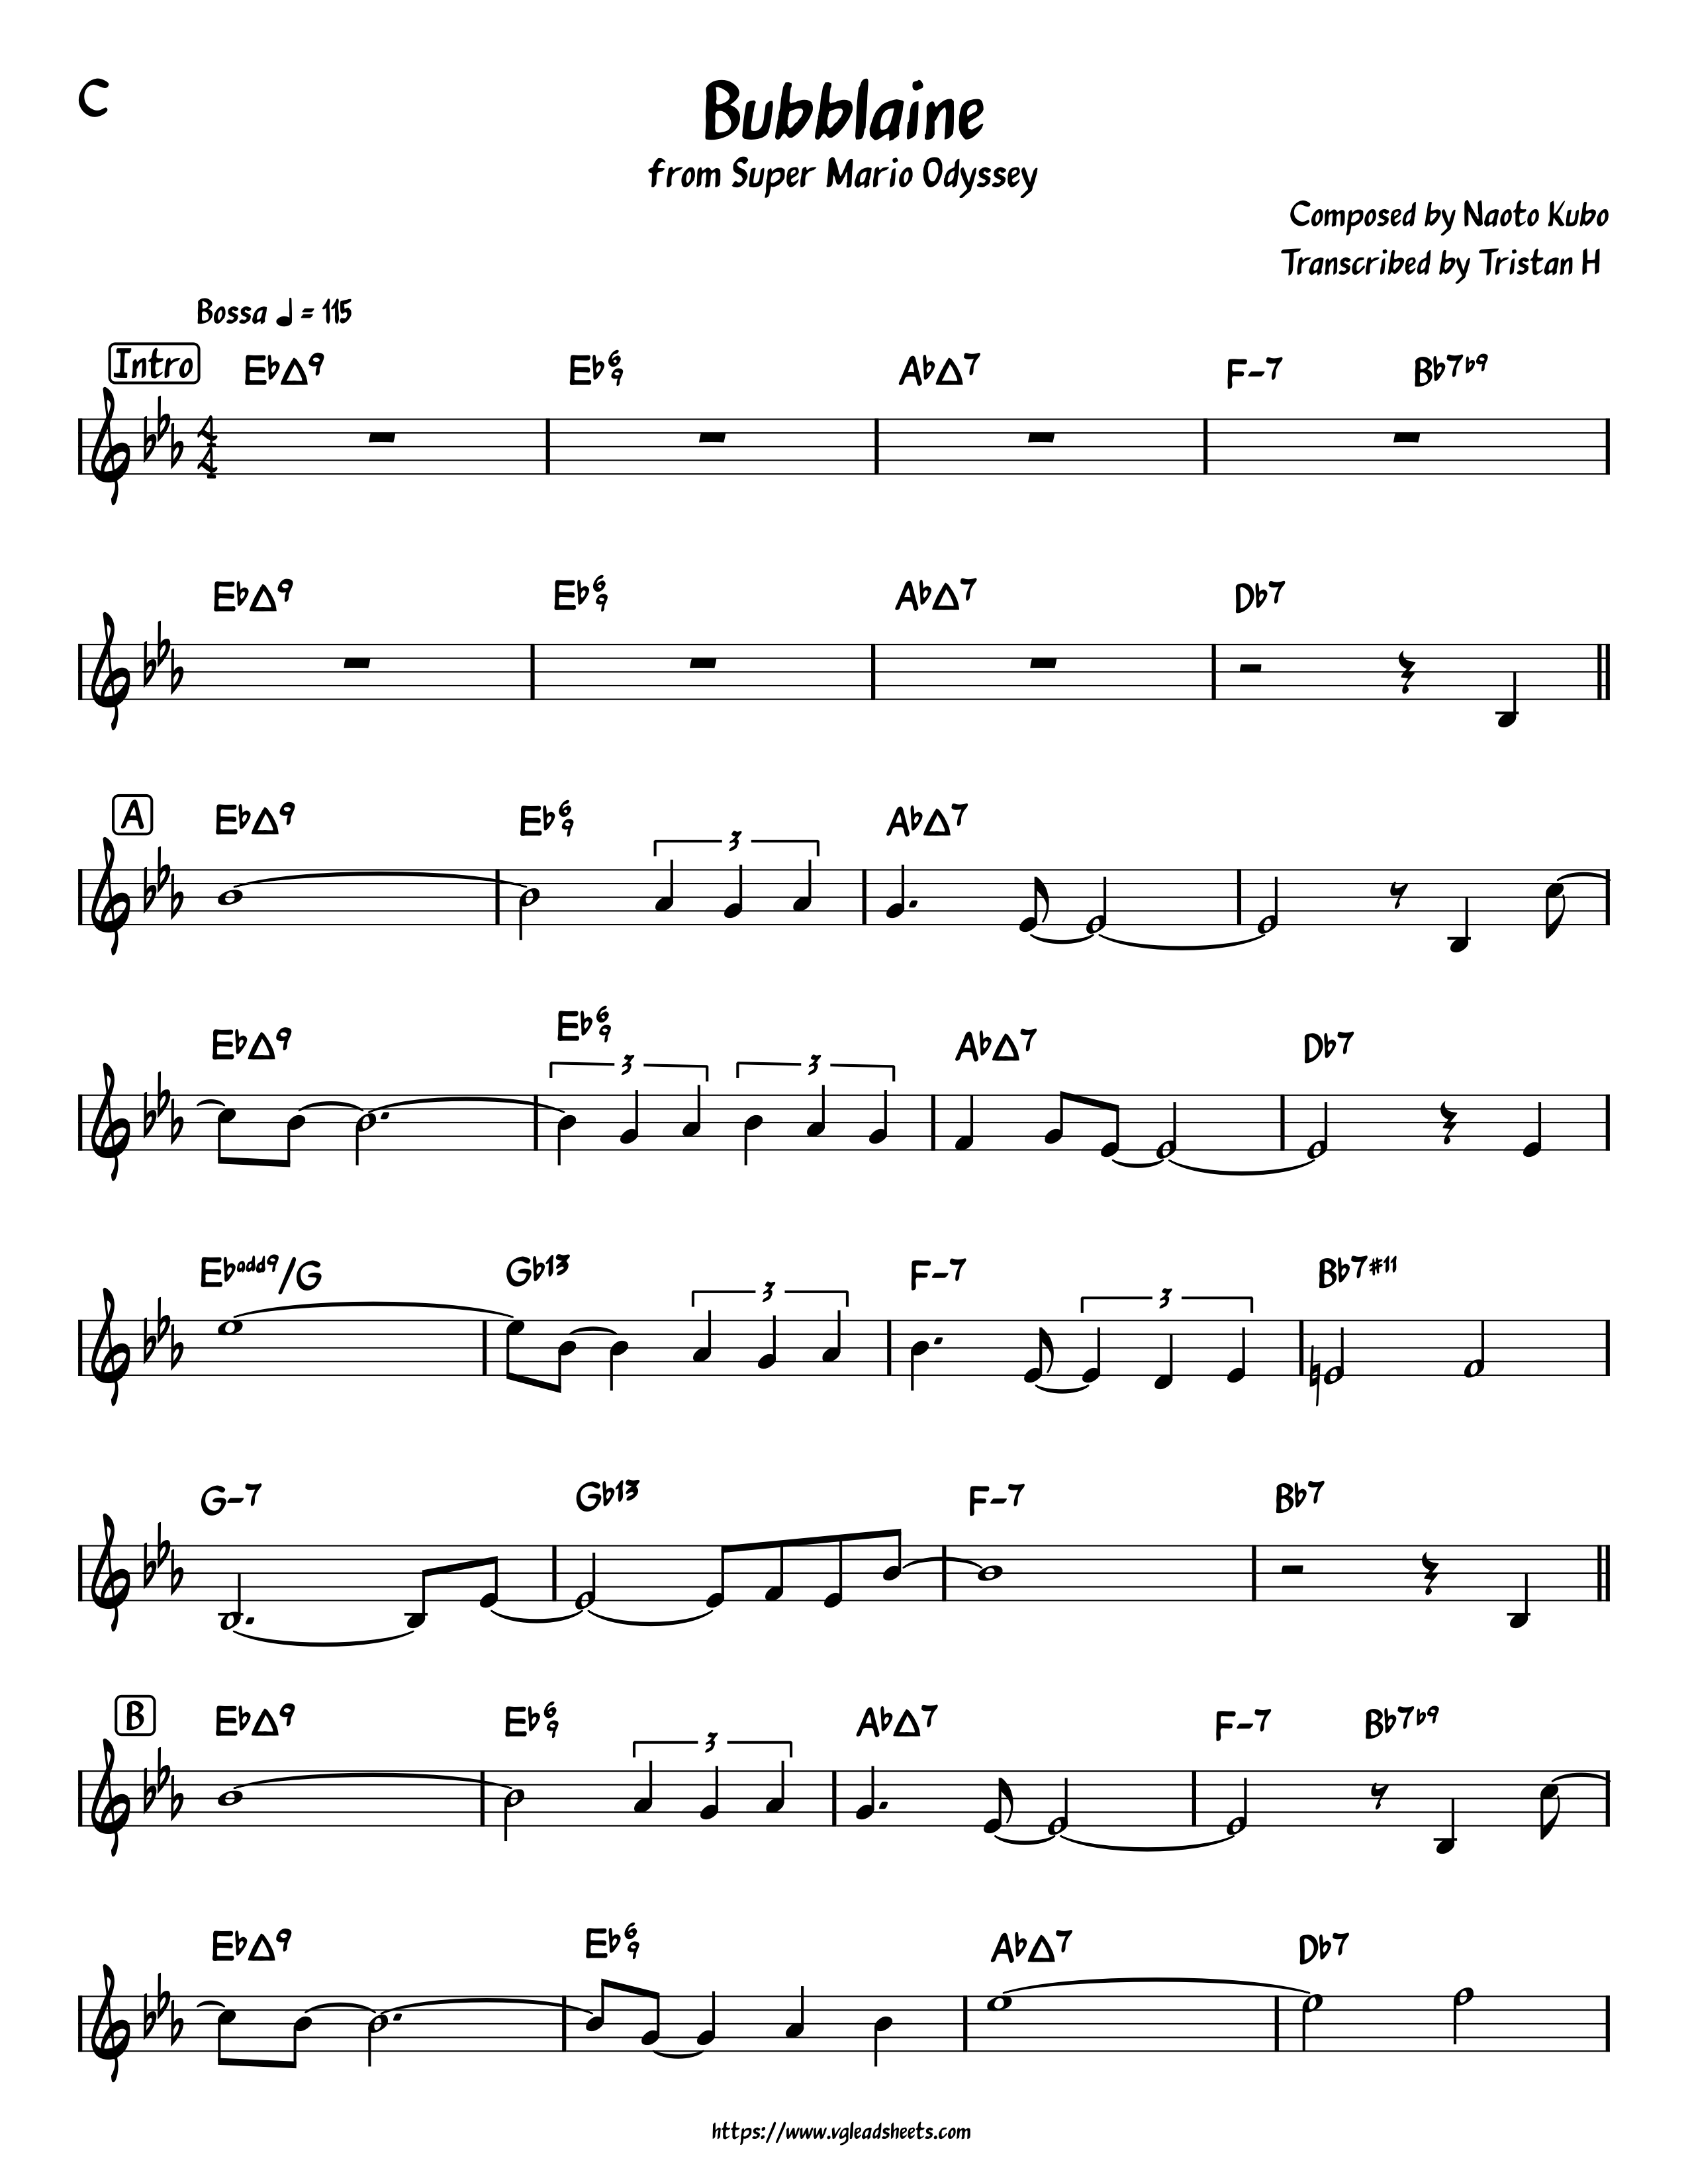 Super Mario Odyssey Bubblaine Vgleadsheets Com Lead Sheets For Video Game Music Top rock guitar and ukulele chords. vgleadsheets com